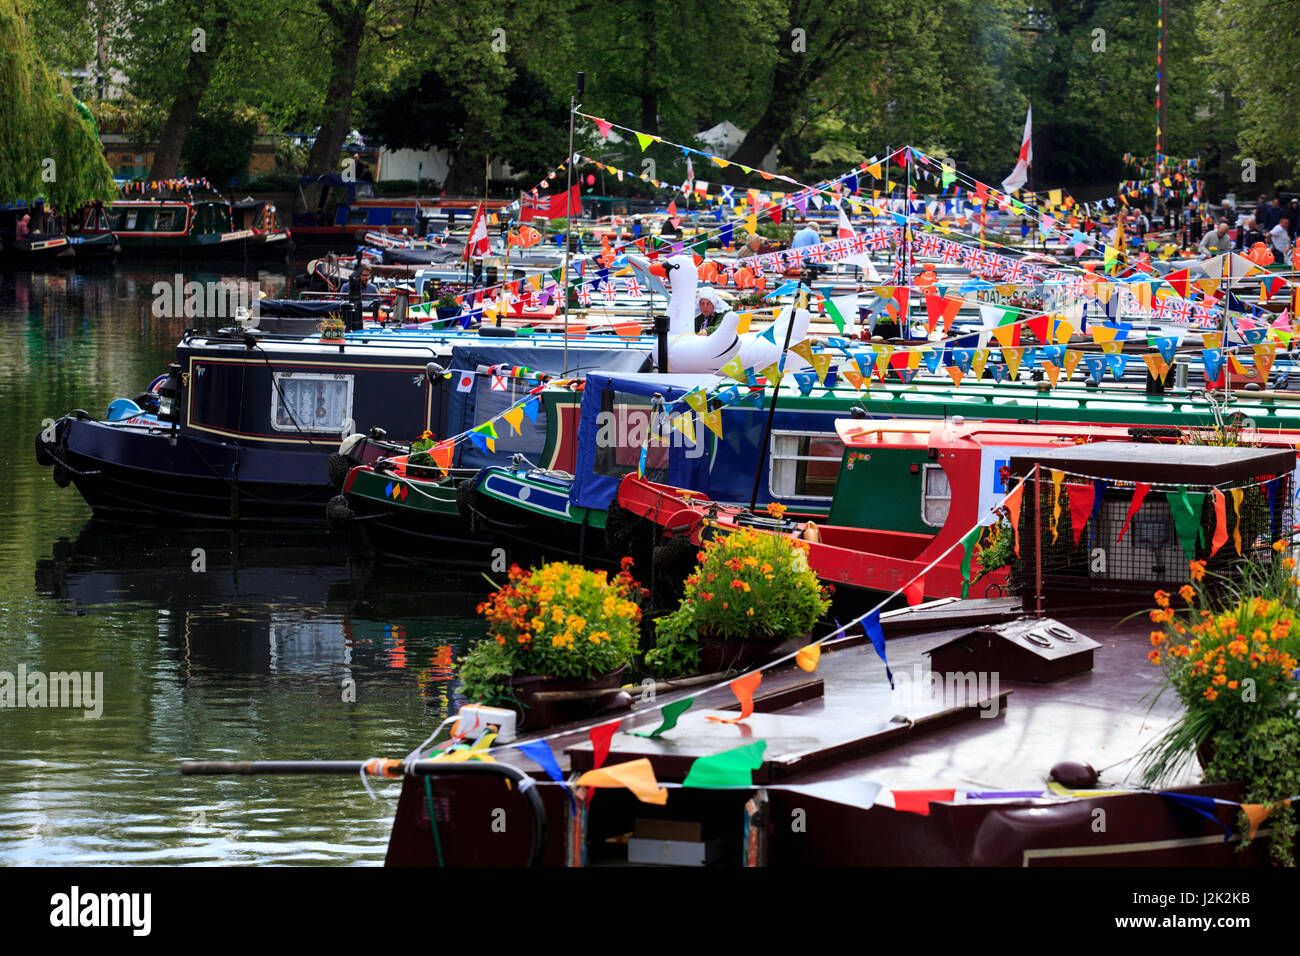 London, UK. 29 April 2017. The three day Canalway Cavalcade festival gets under way in Little Venice, London. The Stock Photo